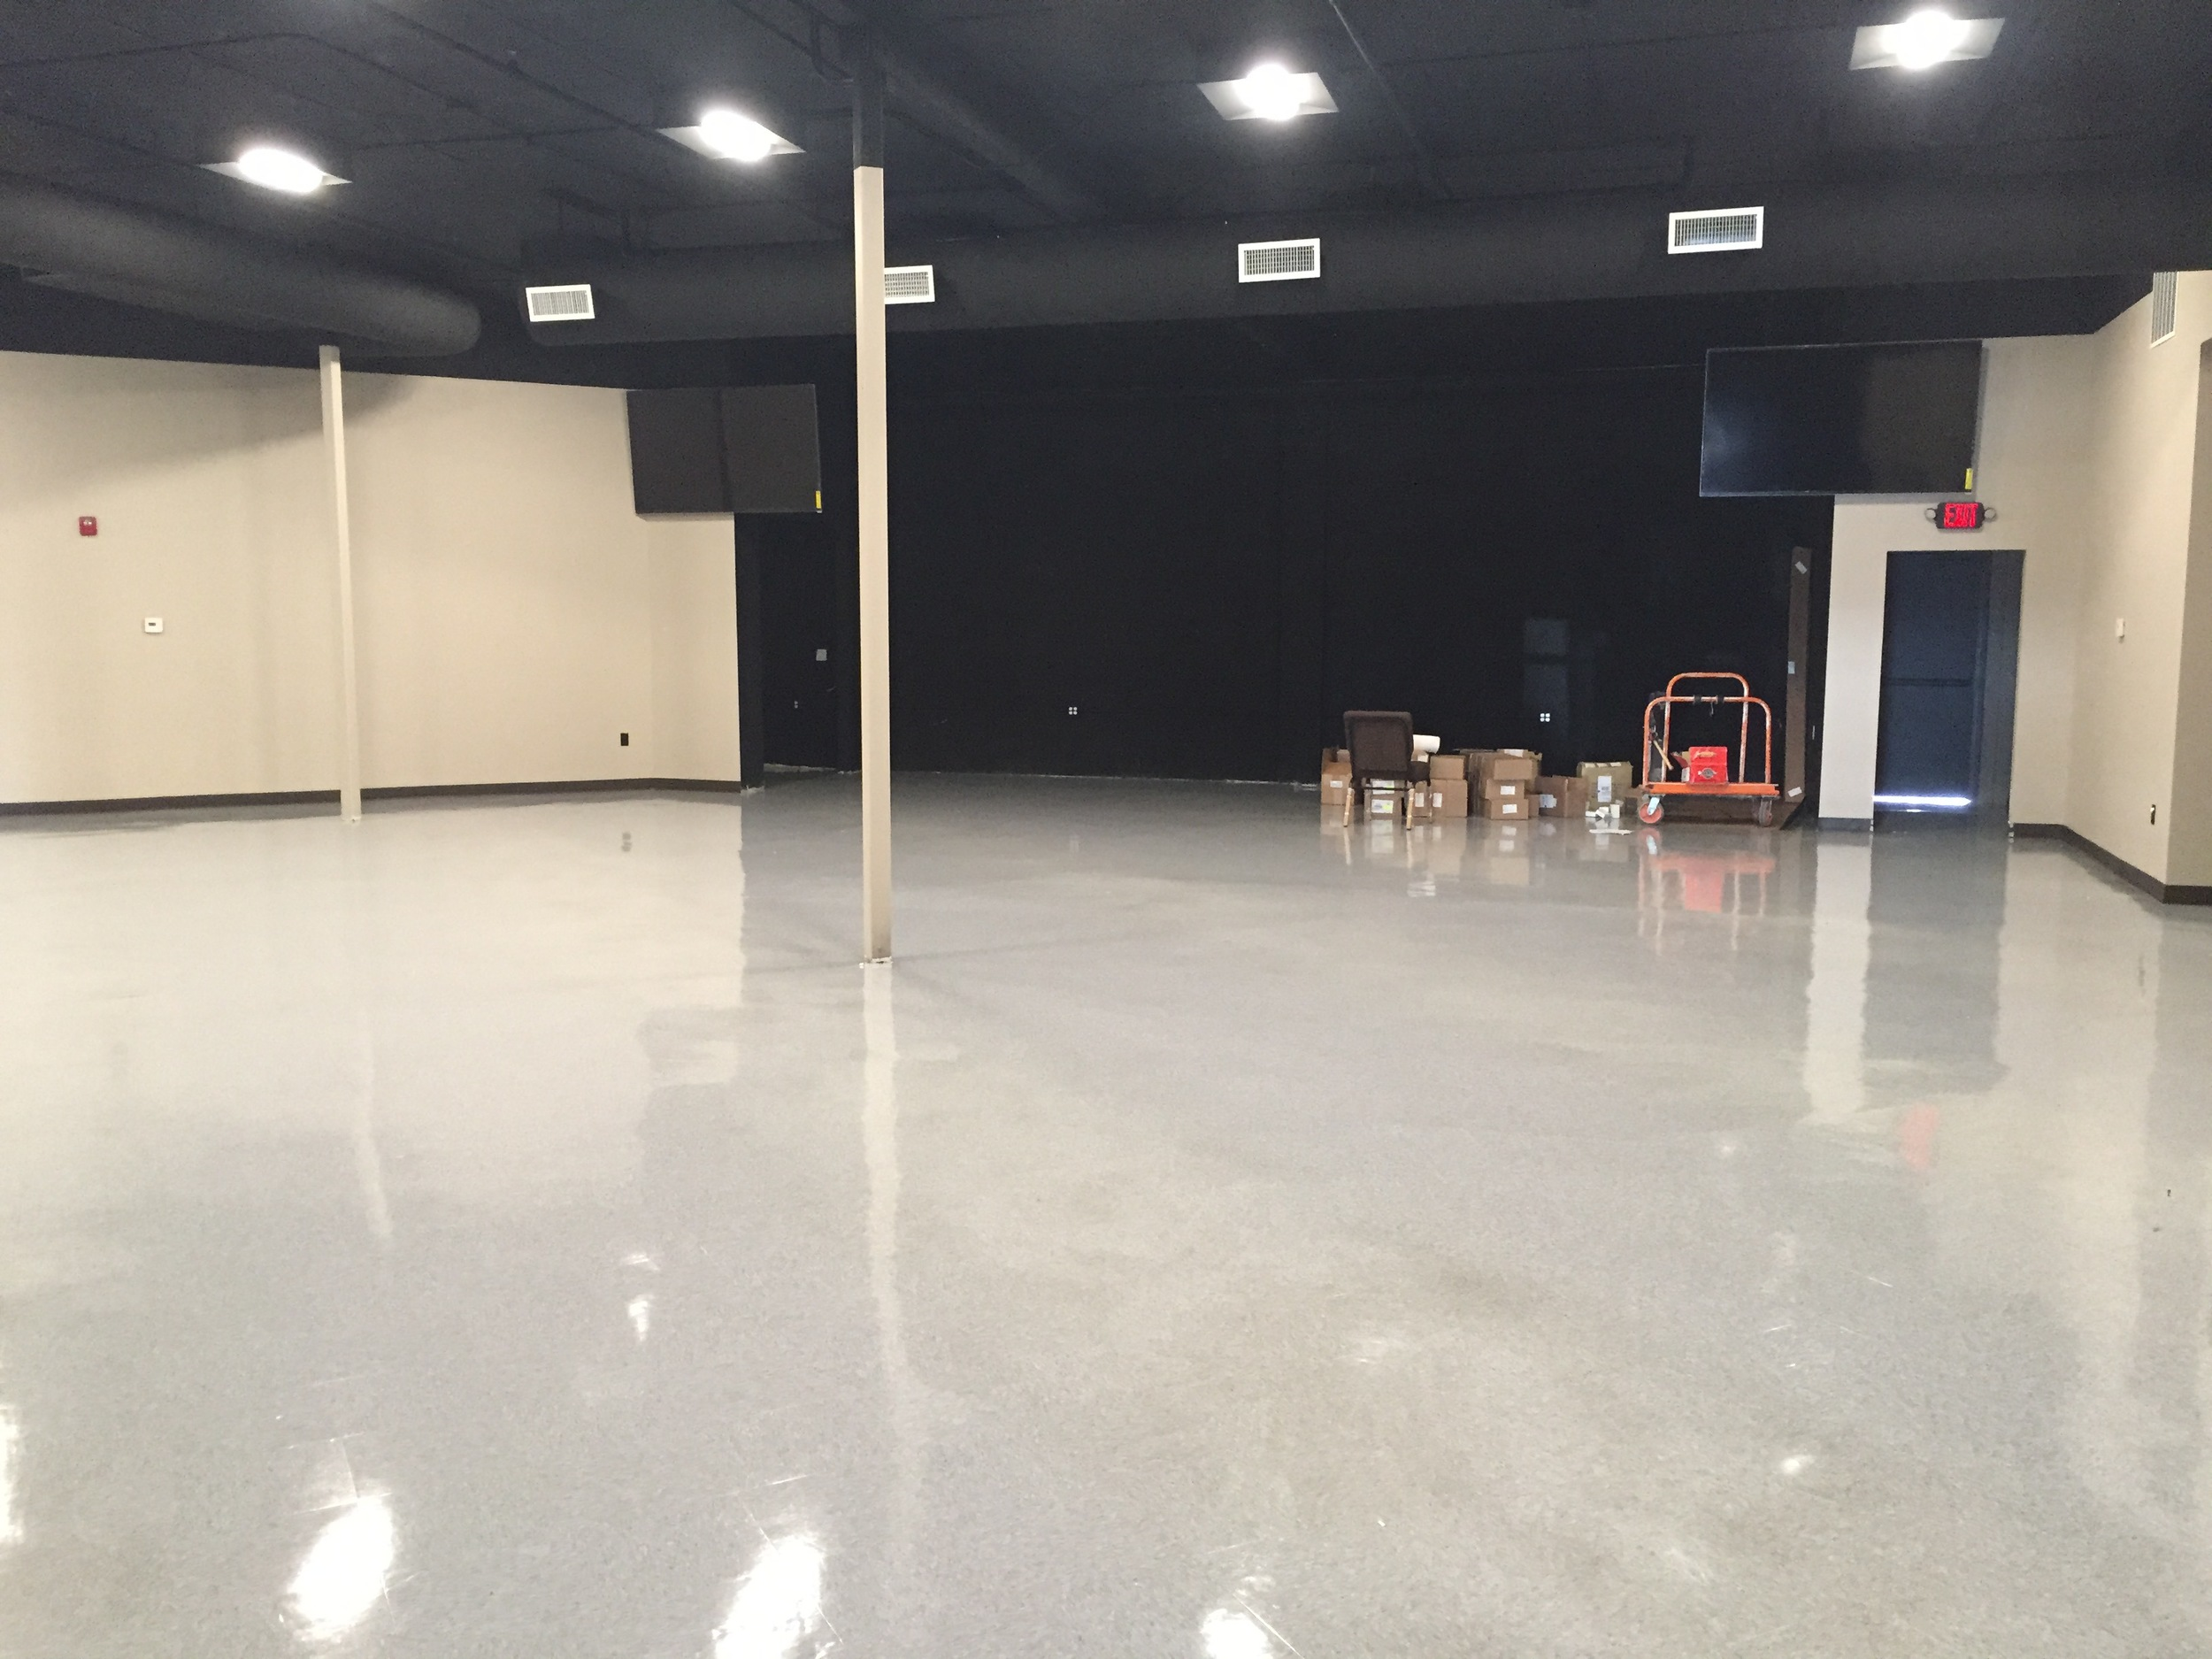 Presentation TVs are in and the floor's been freshly waxed and lookin' shiny!